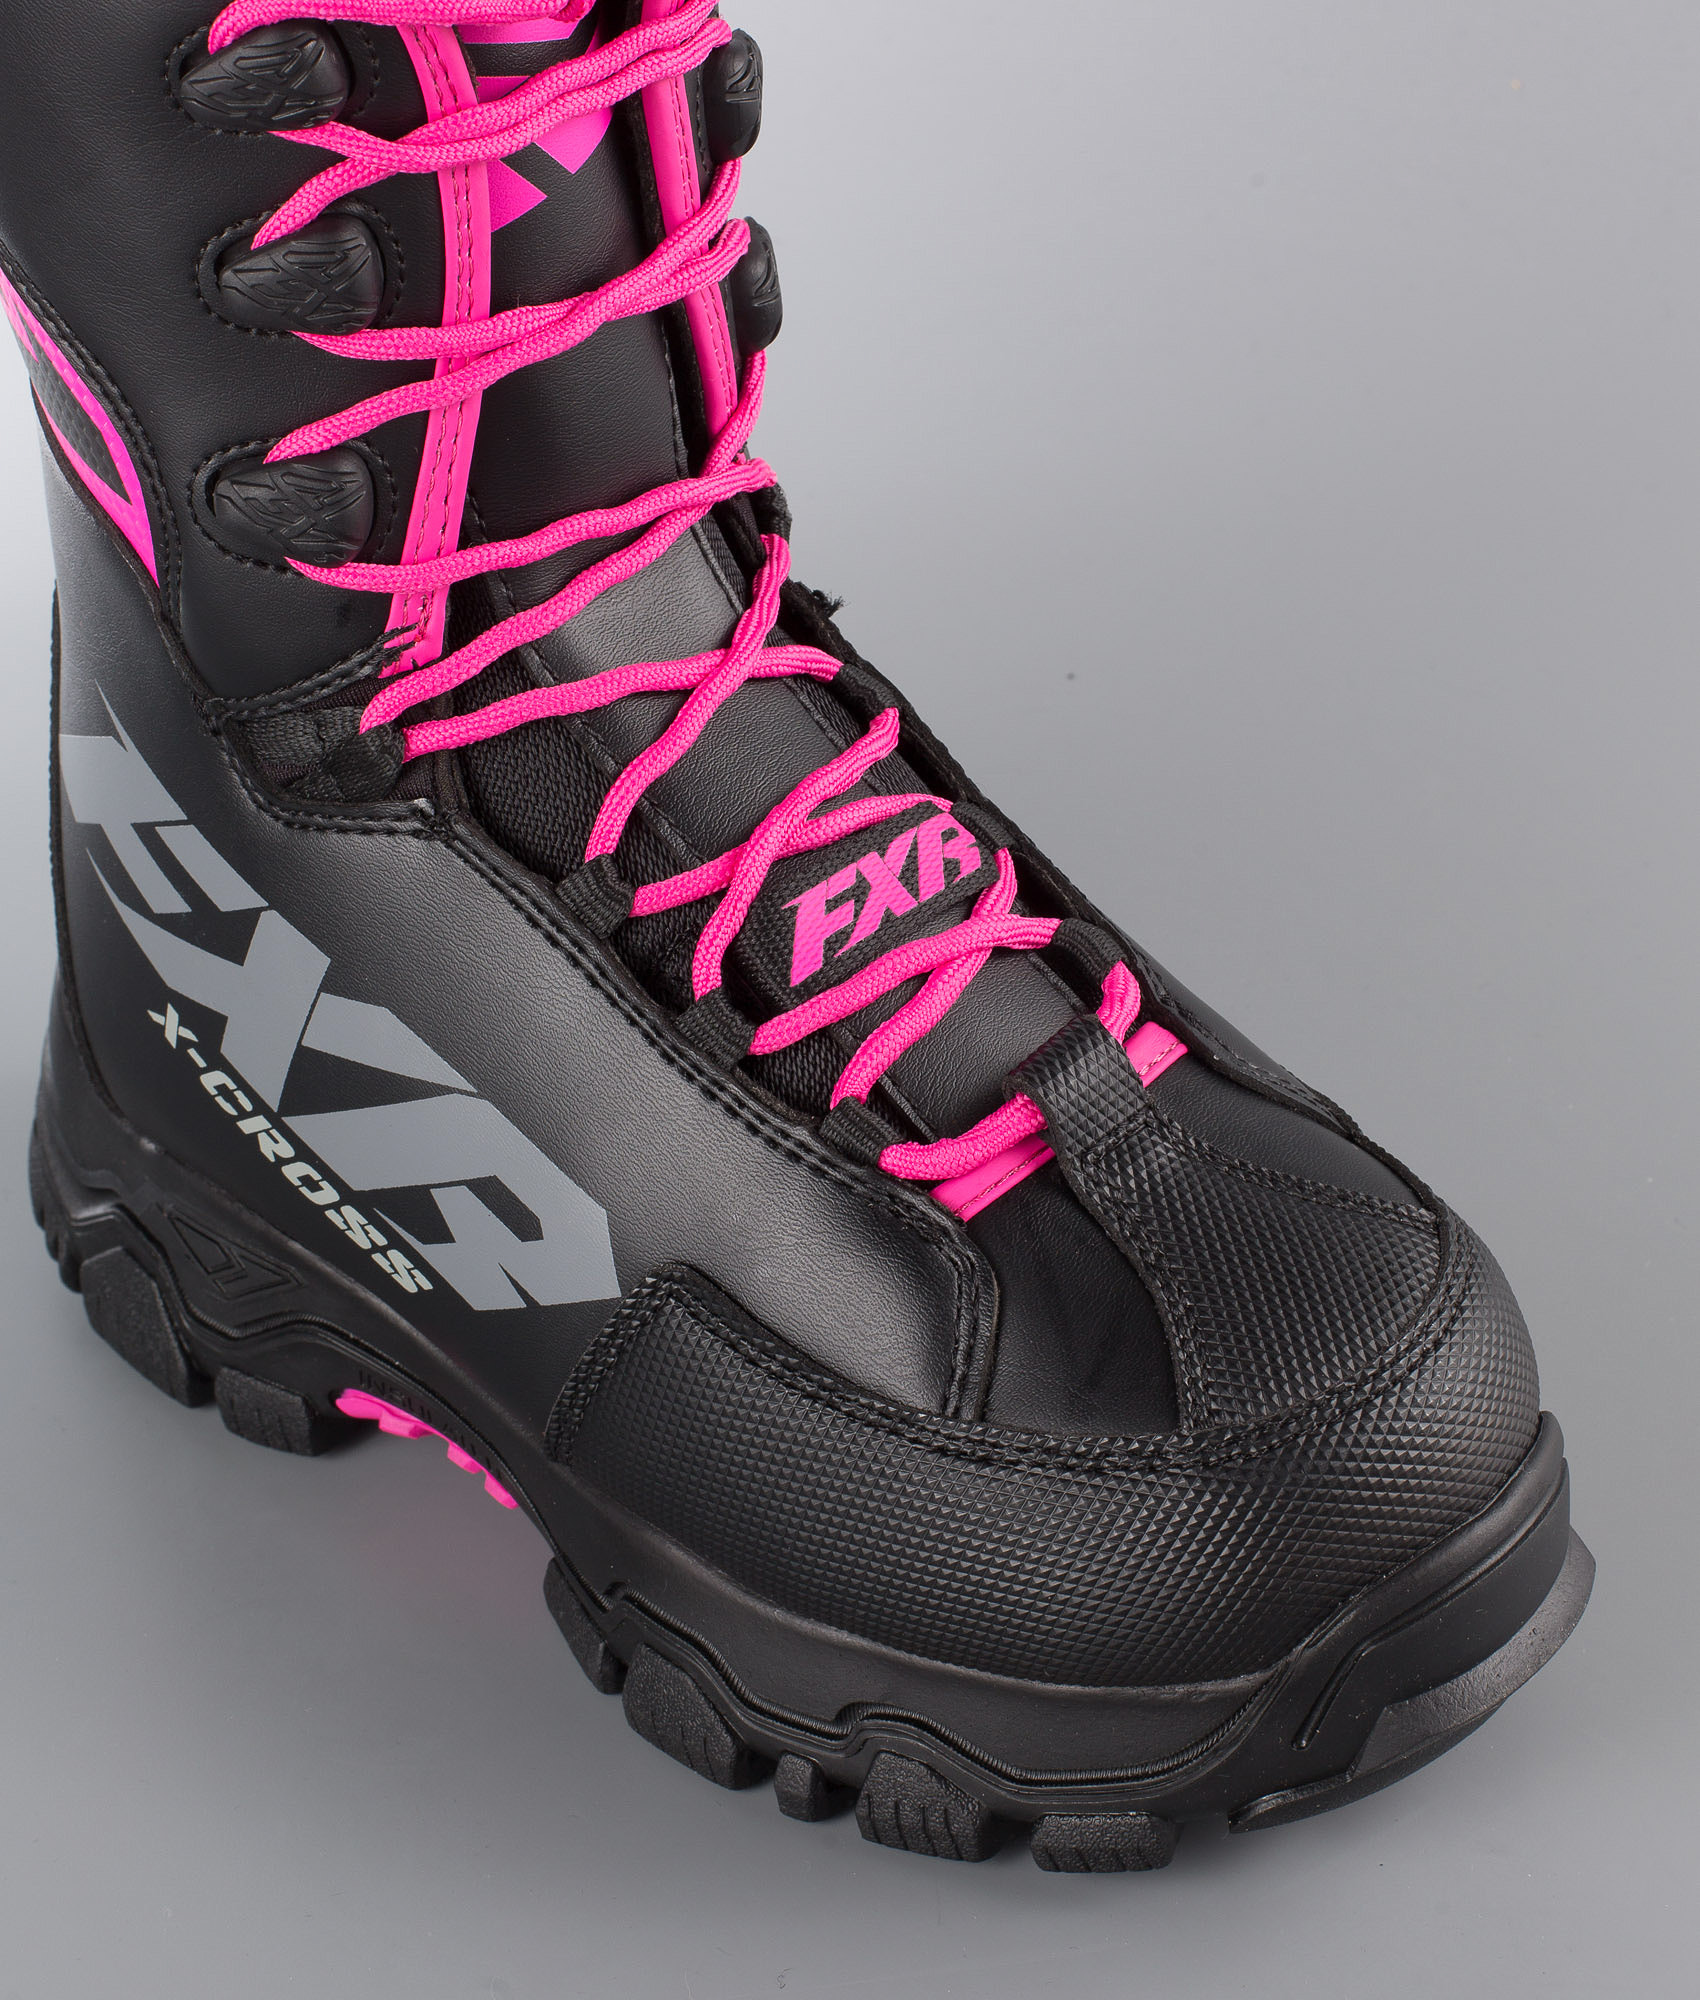 b6f9a23c5ac FXR X-Cross Speed Snøscooterstøvler Black/Fuchsia - Ridestore.no